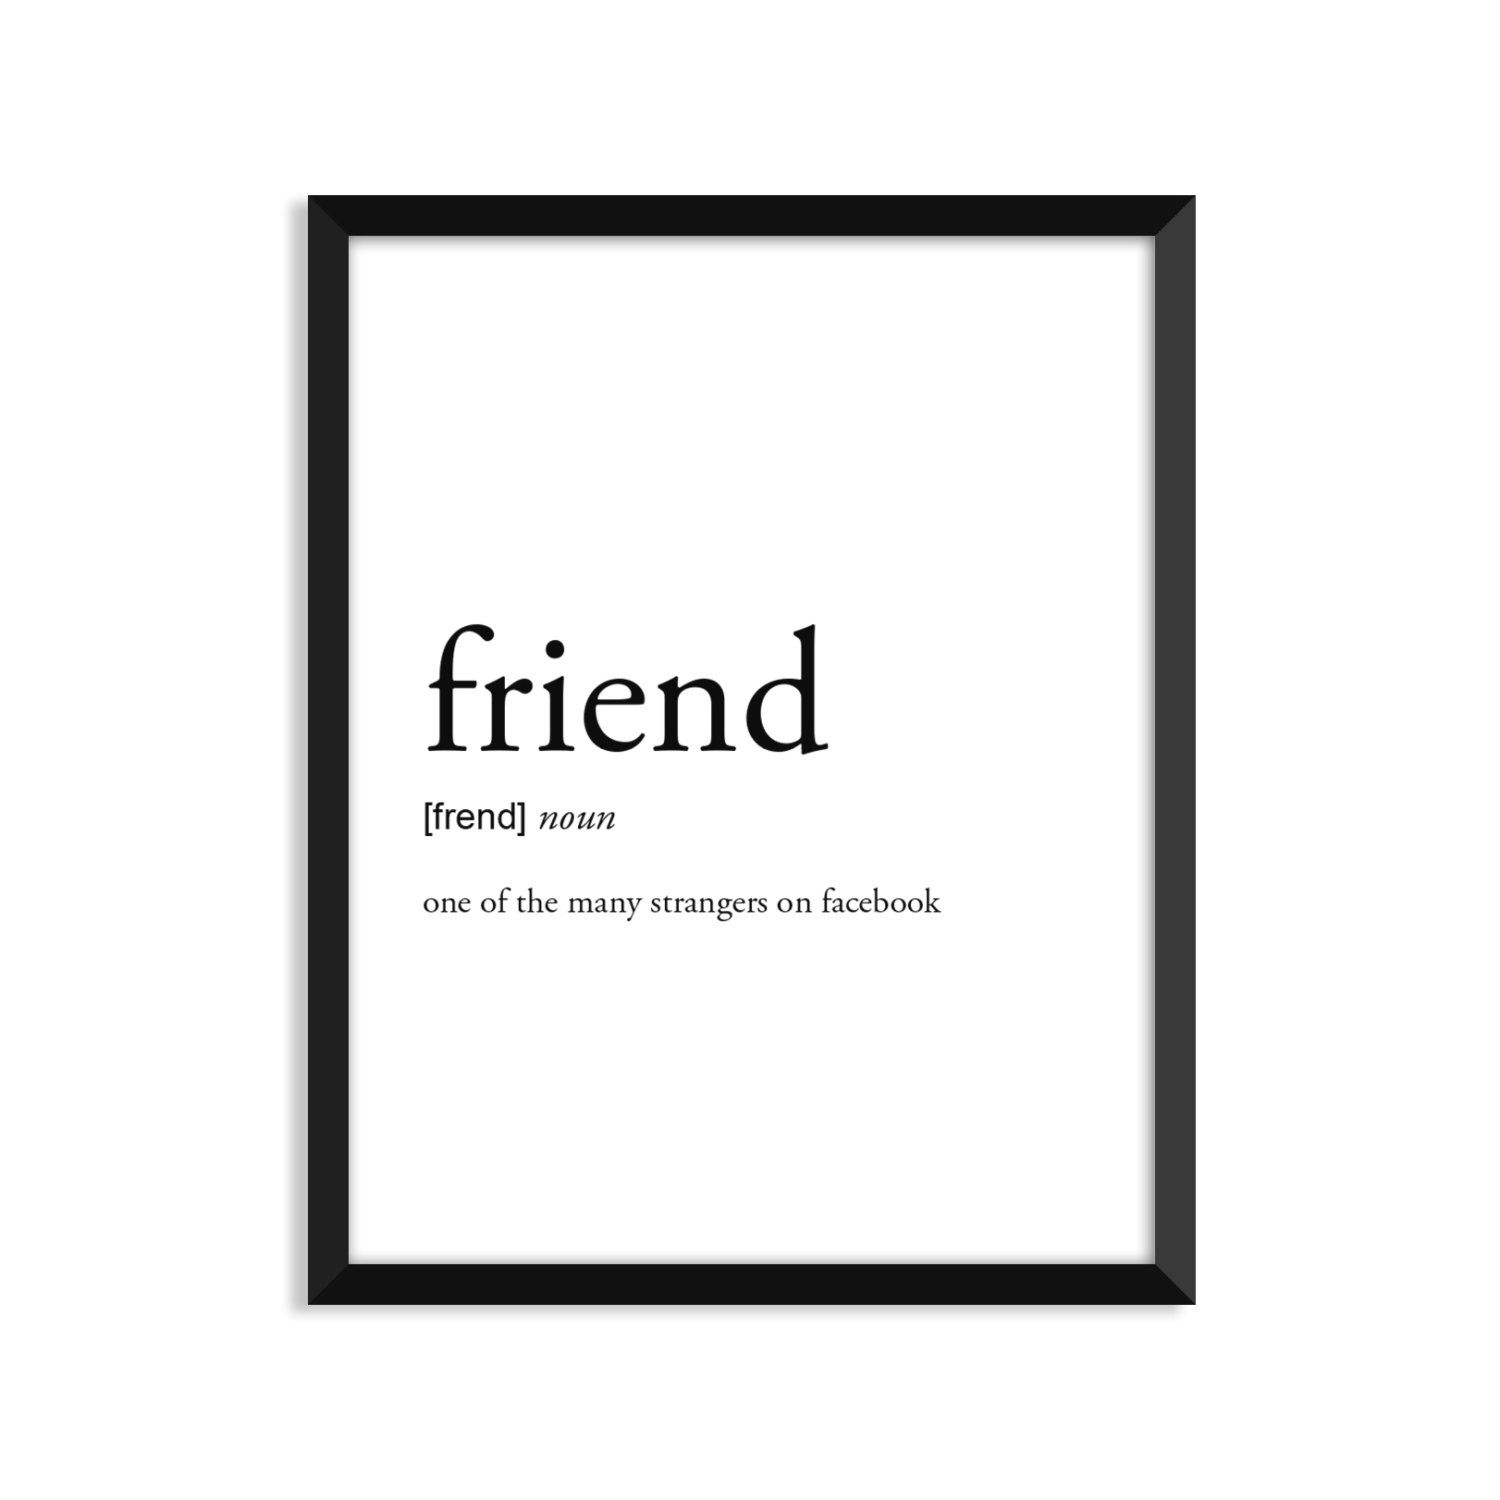 Friend Definition, College Dorm Room Decor, Dorm Wall Art ...